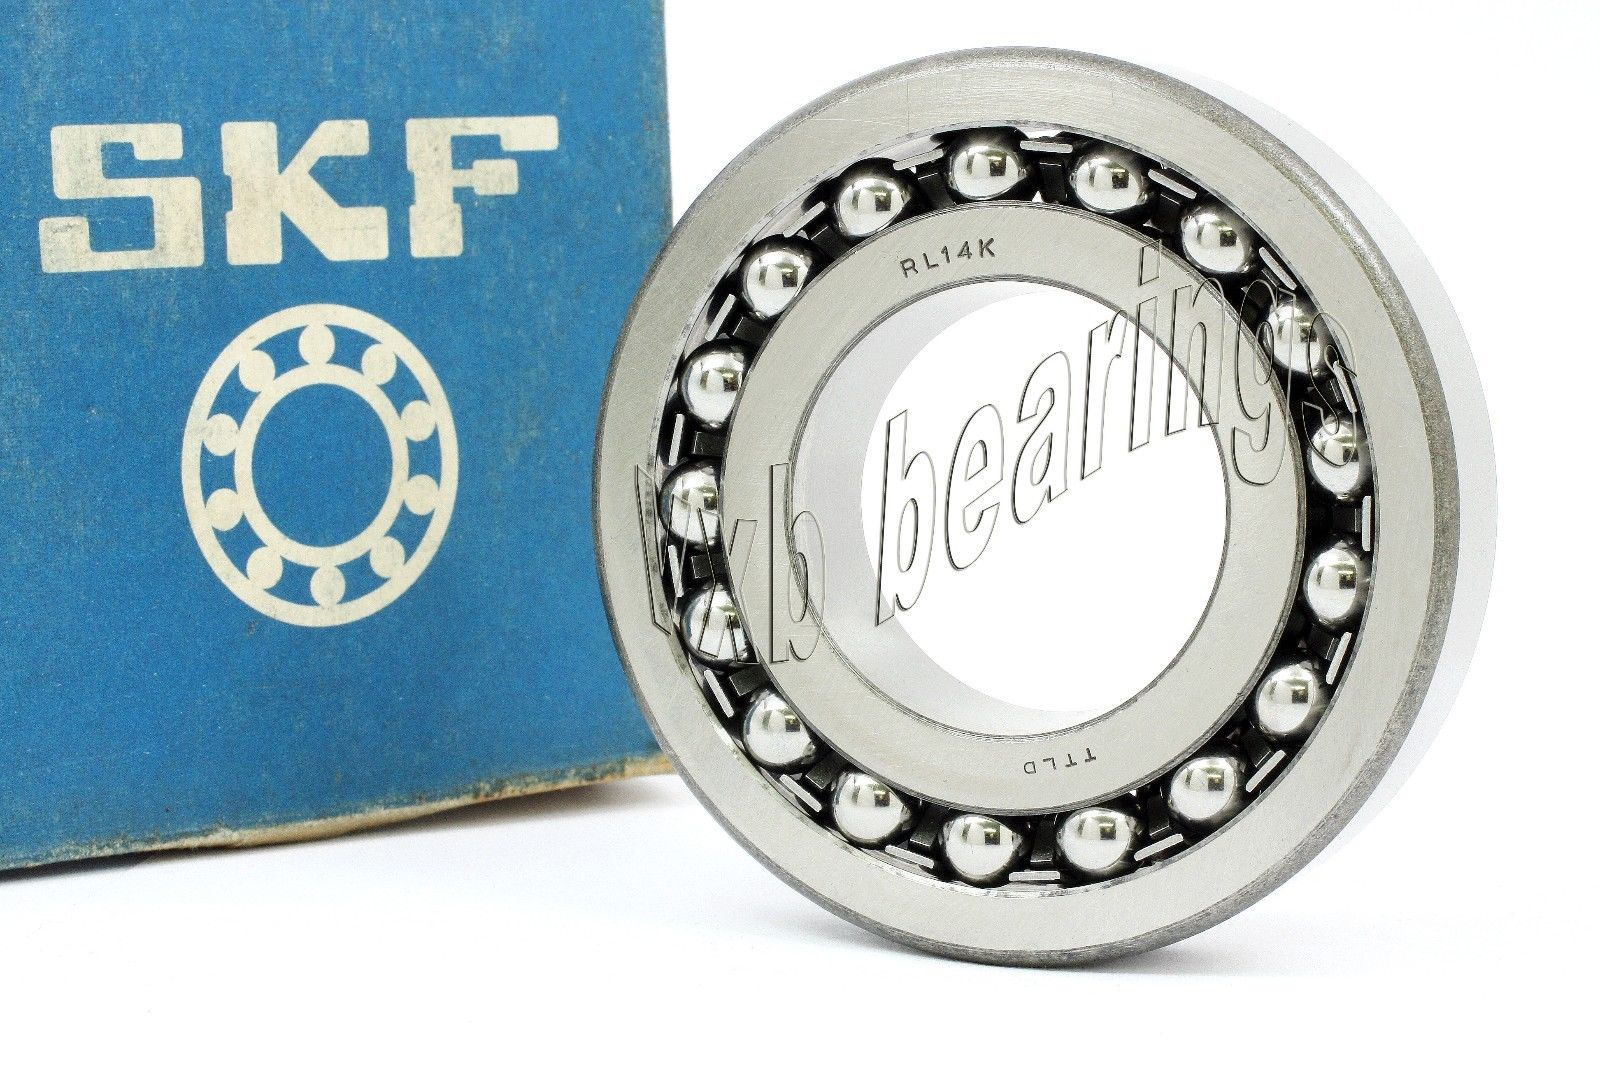 high temperature SKF RL14K Double Row Self-Aligning Ball Bearing   I/D 45mm O/D 95mm Width 20mm